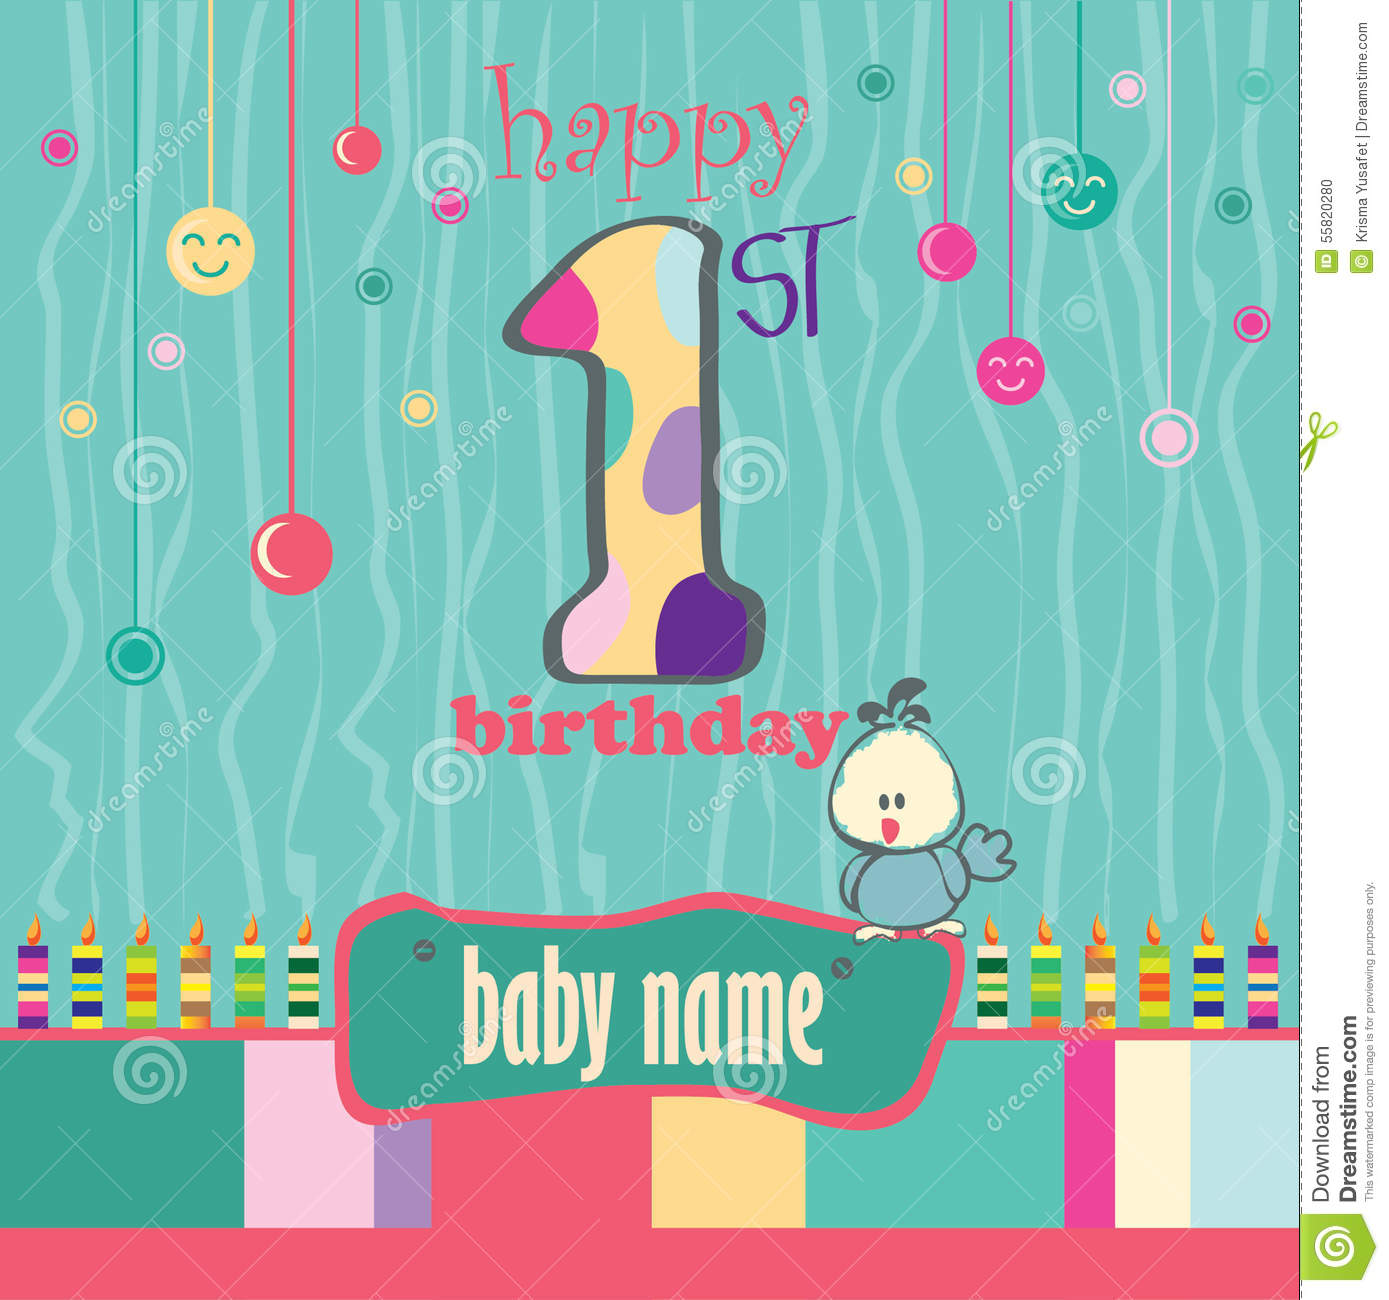 1st birthday greeting card stock illustration illustration of cake 1st birthday greeting card m4hsunfo